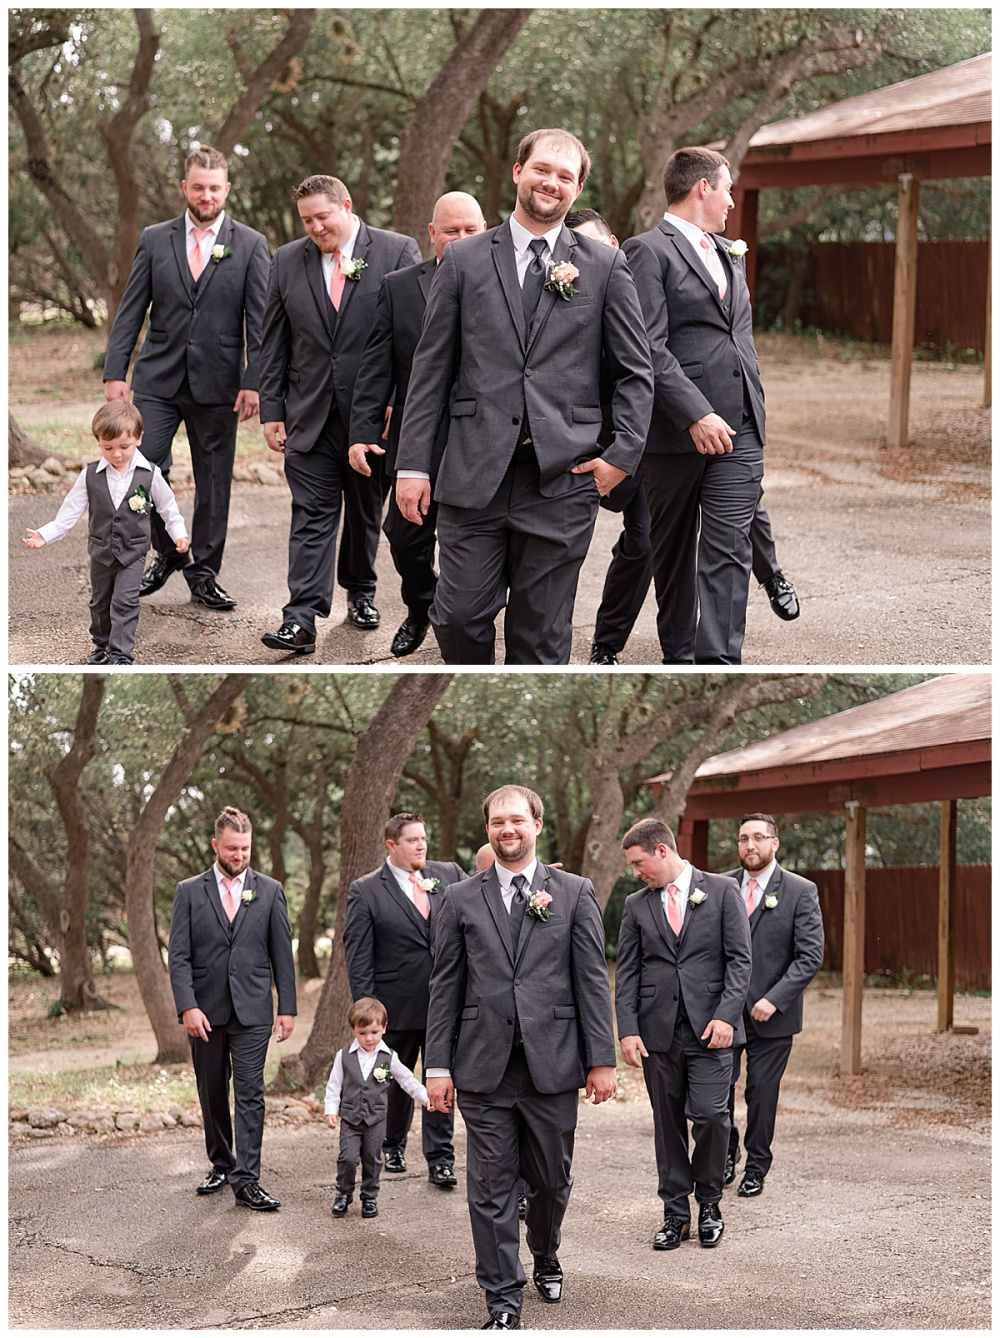 Michael-Tiffany-Wedding-New-Braunfels-Texas-Canyon-Lake-Cabins-and-Cottages-Carly-Barton-Photography_0018.jpg